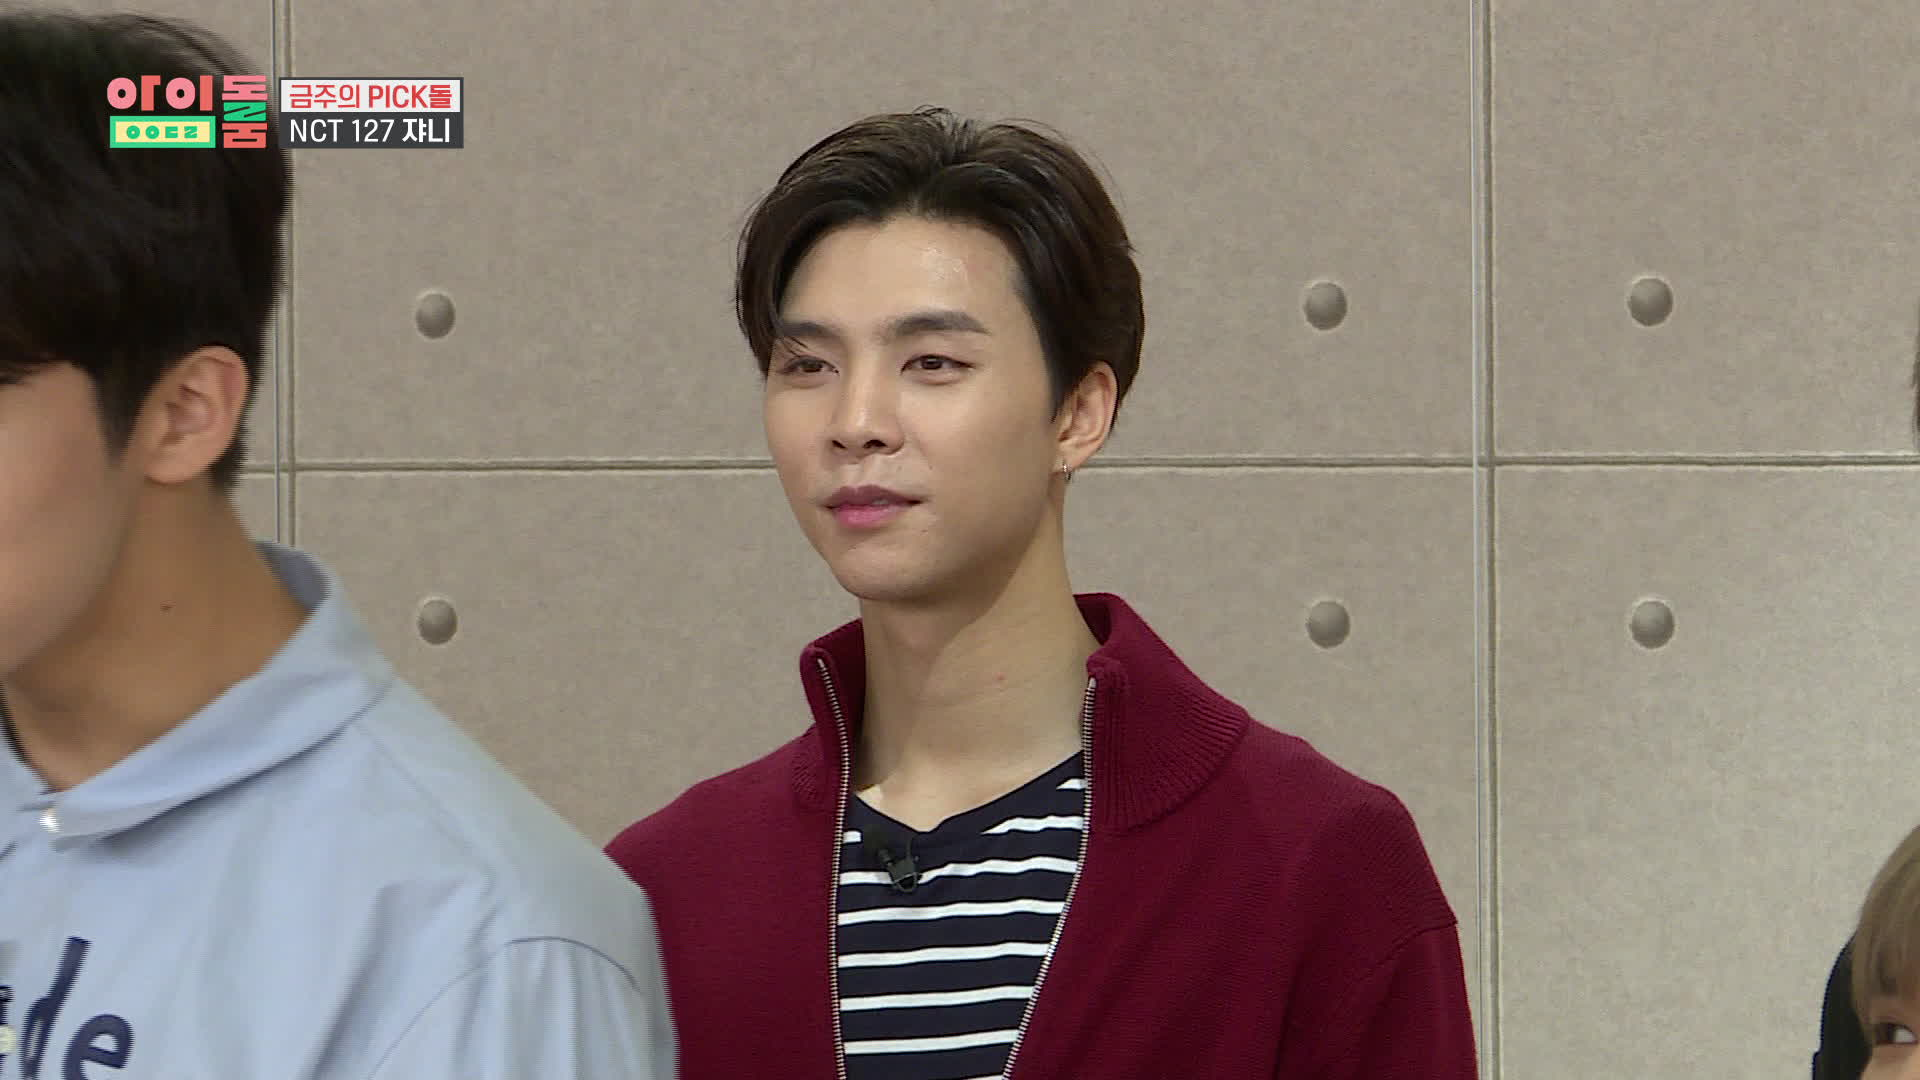 아이돌룸(IDOL ROOM) 23회 스윗쟌CAM - 팩트체크 Part 1-1 Johnny's CAM - Fact check part 1-1